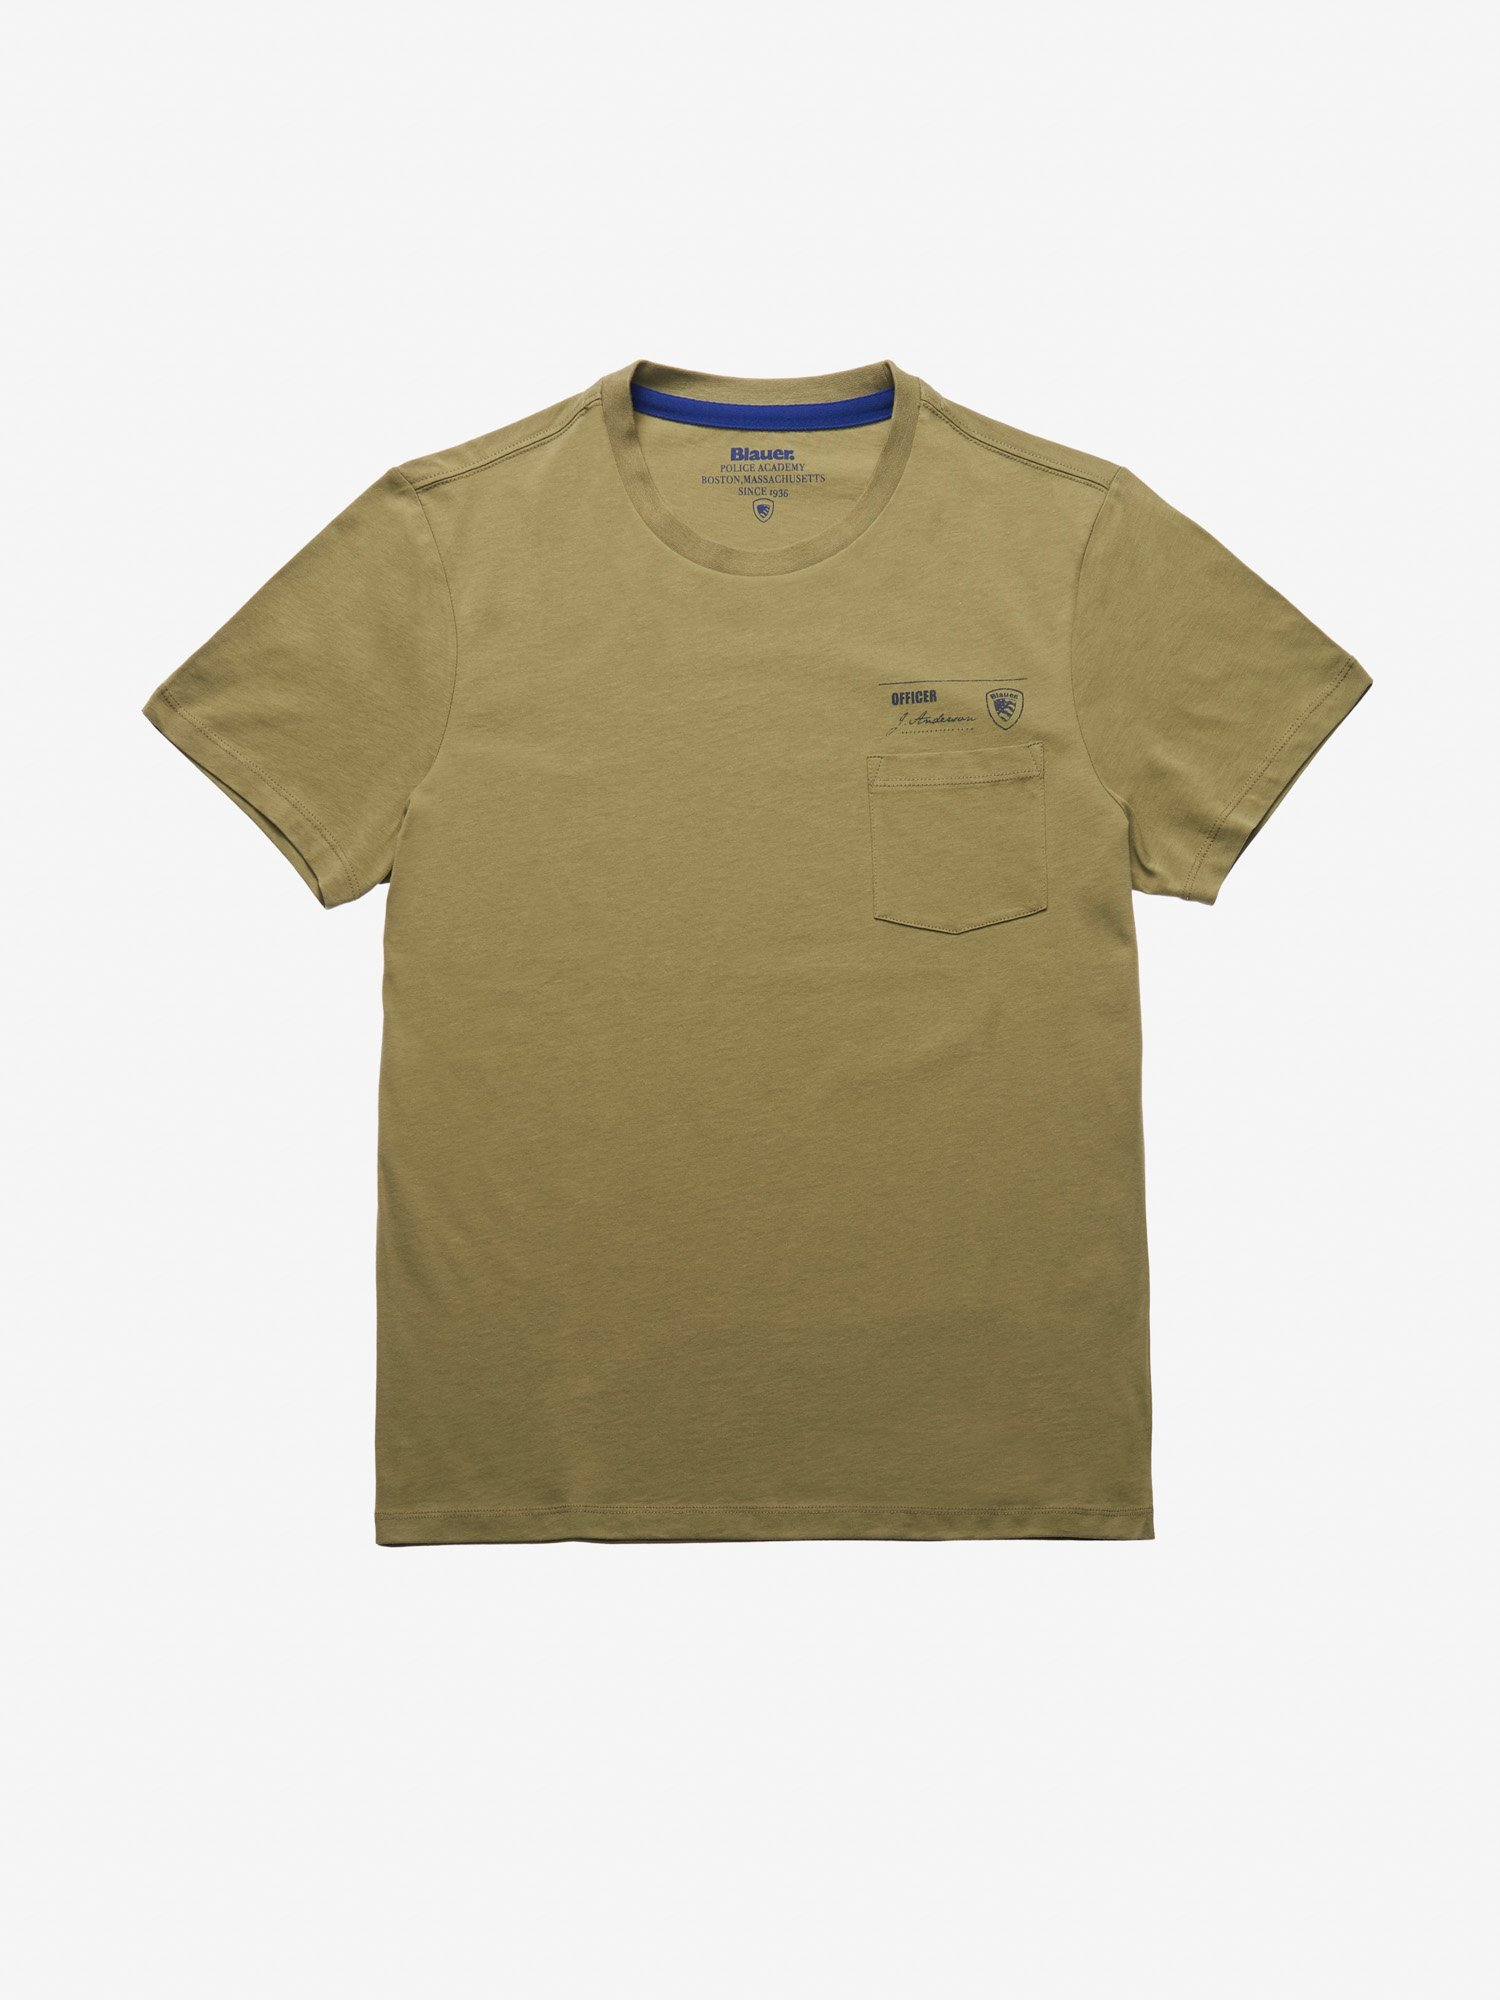 Blauer - MEN'S POCKET T-SHIRT - Dusty Green - Blauer